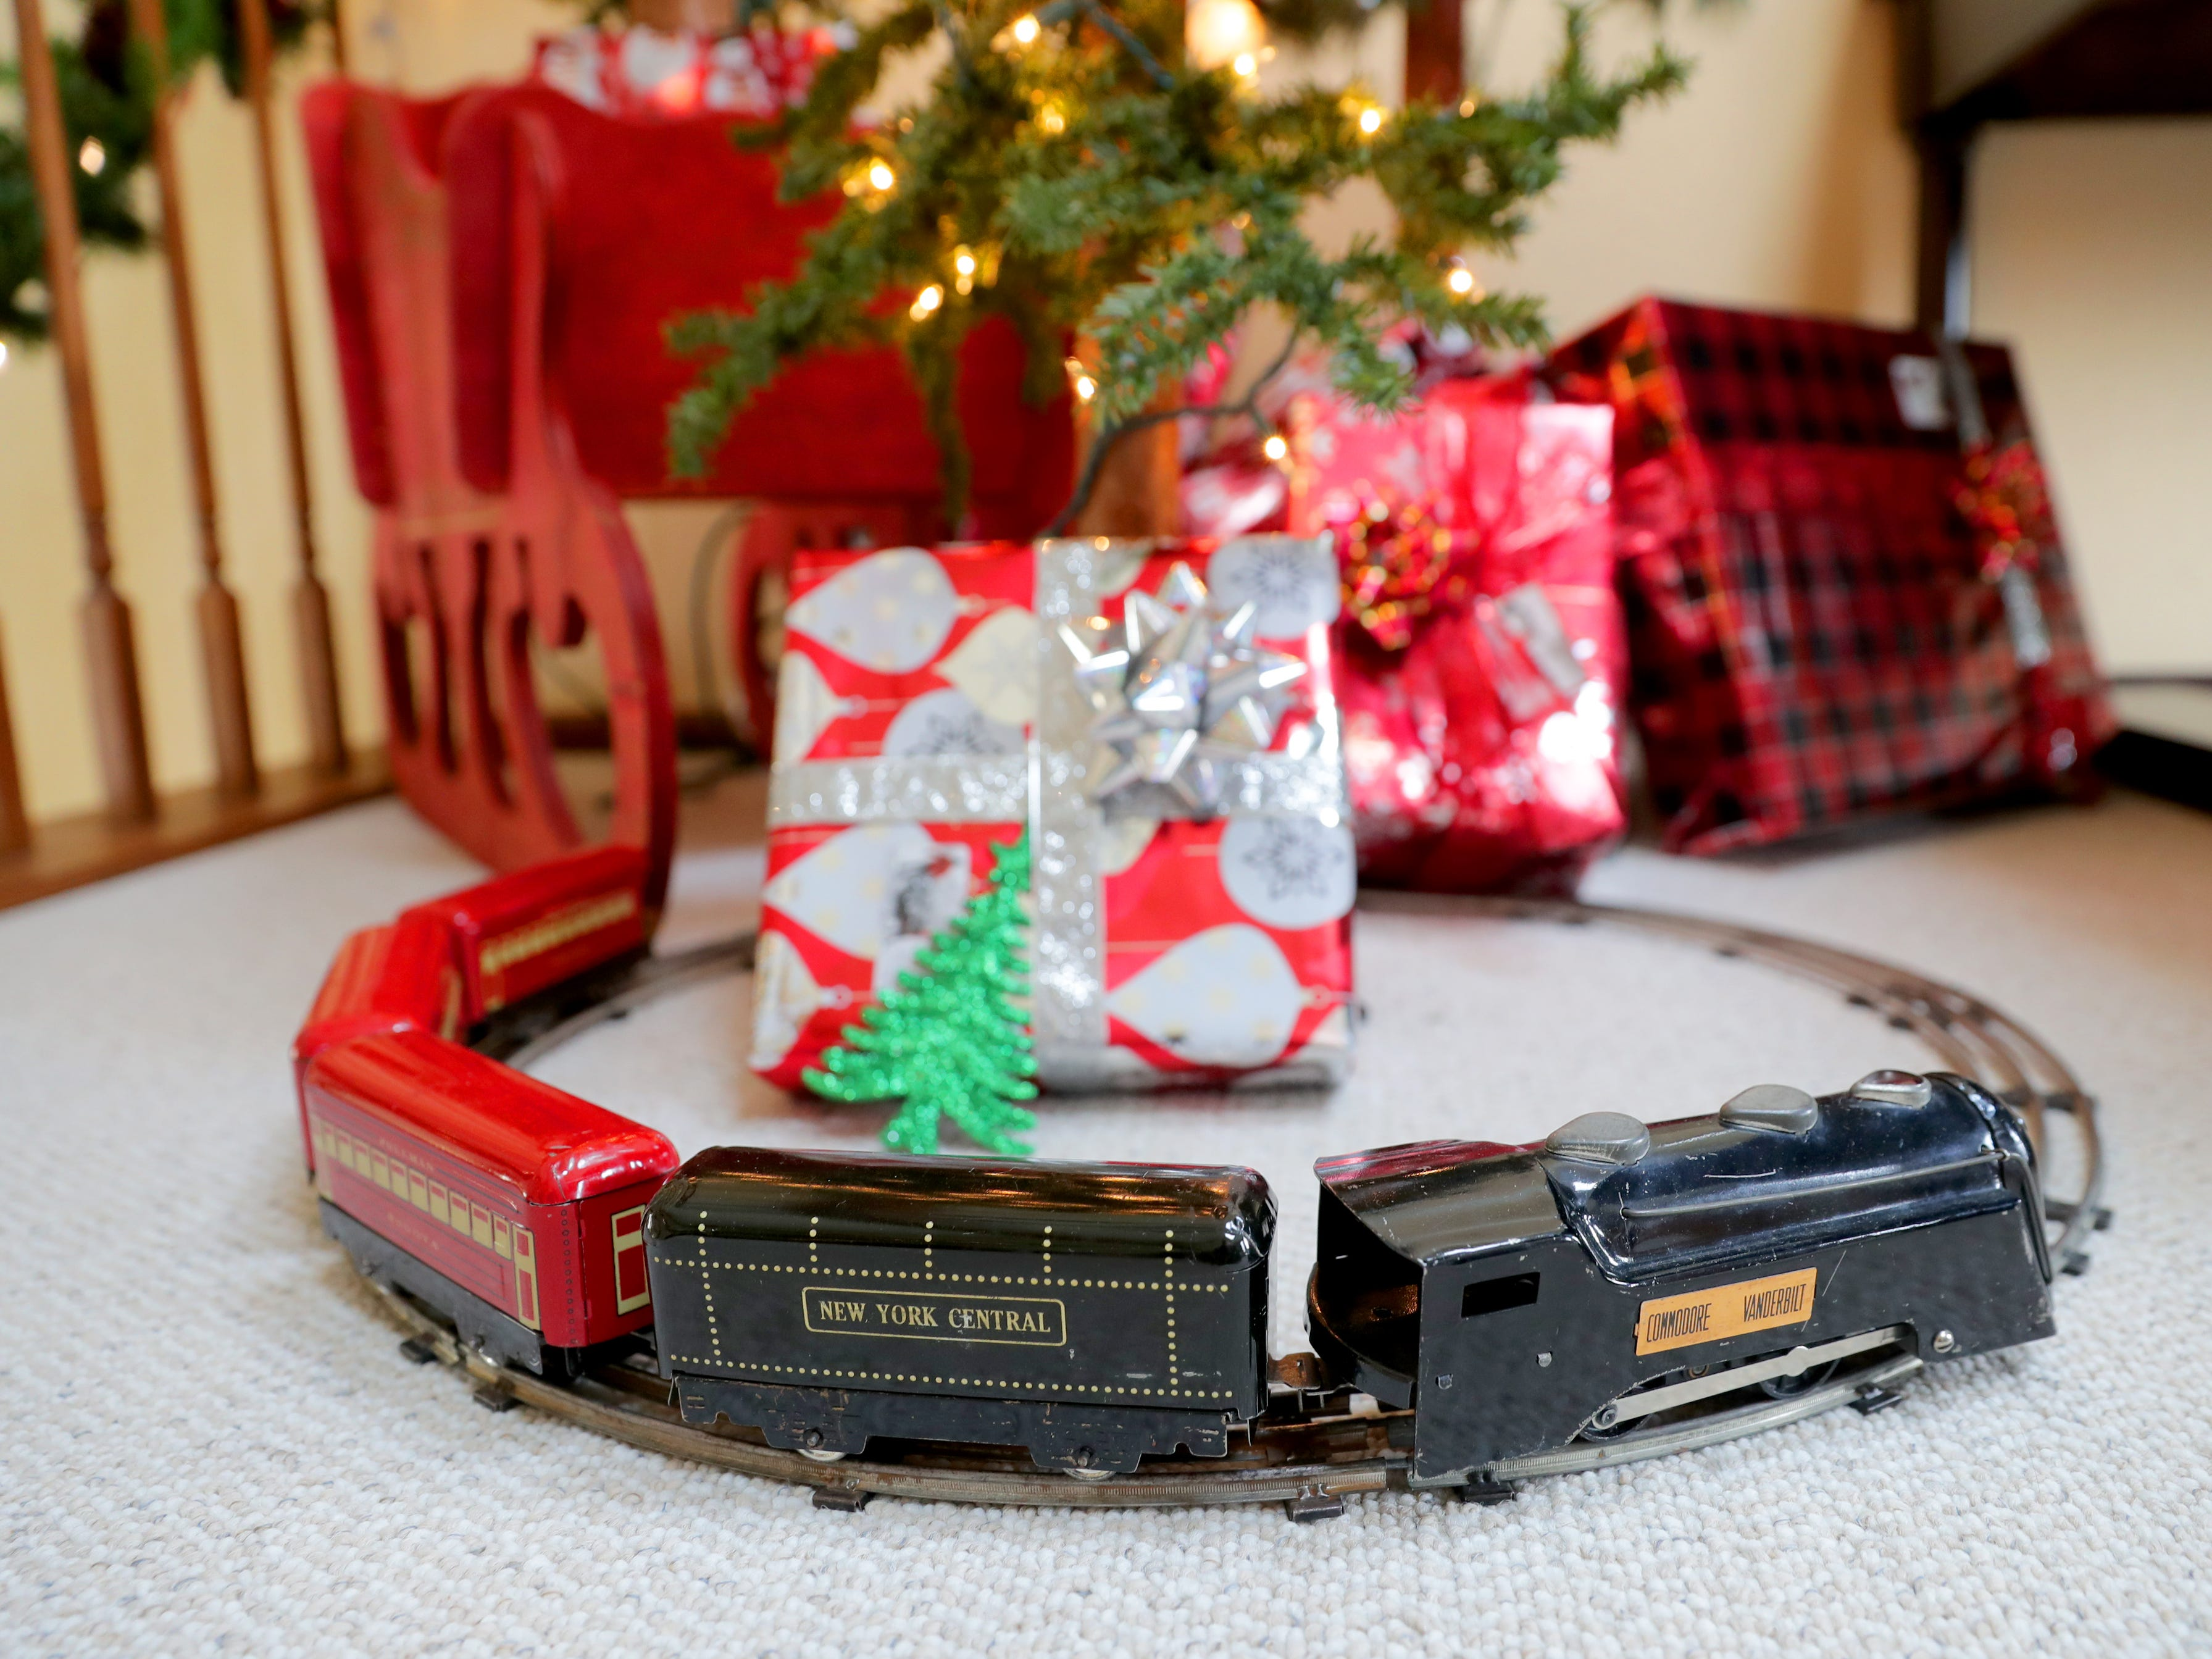 An antique model train from the 1950s surrounds a tree in the office.